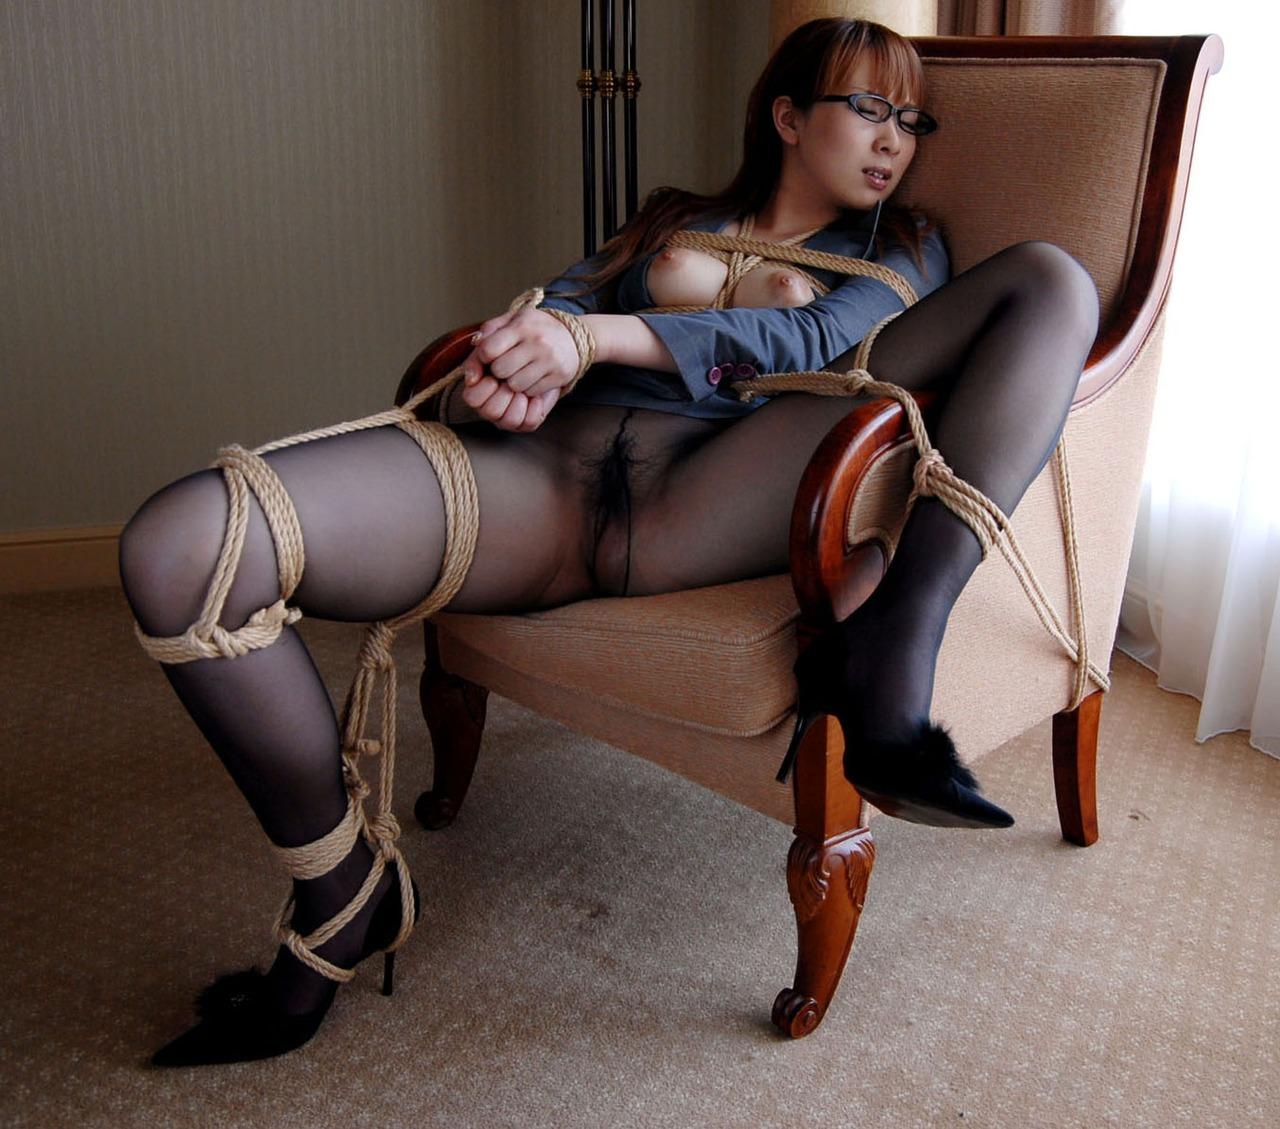 JAV chair shibari